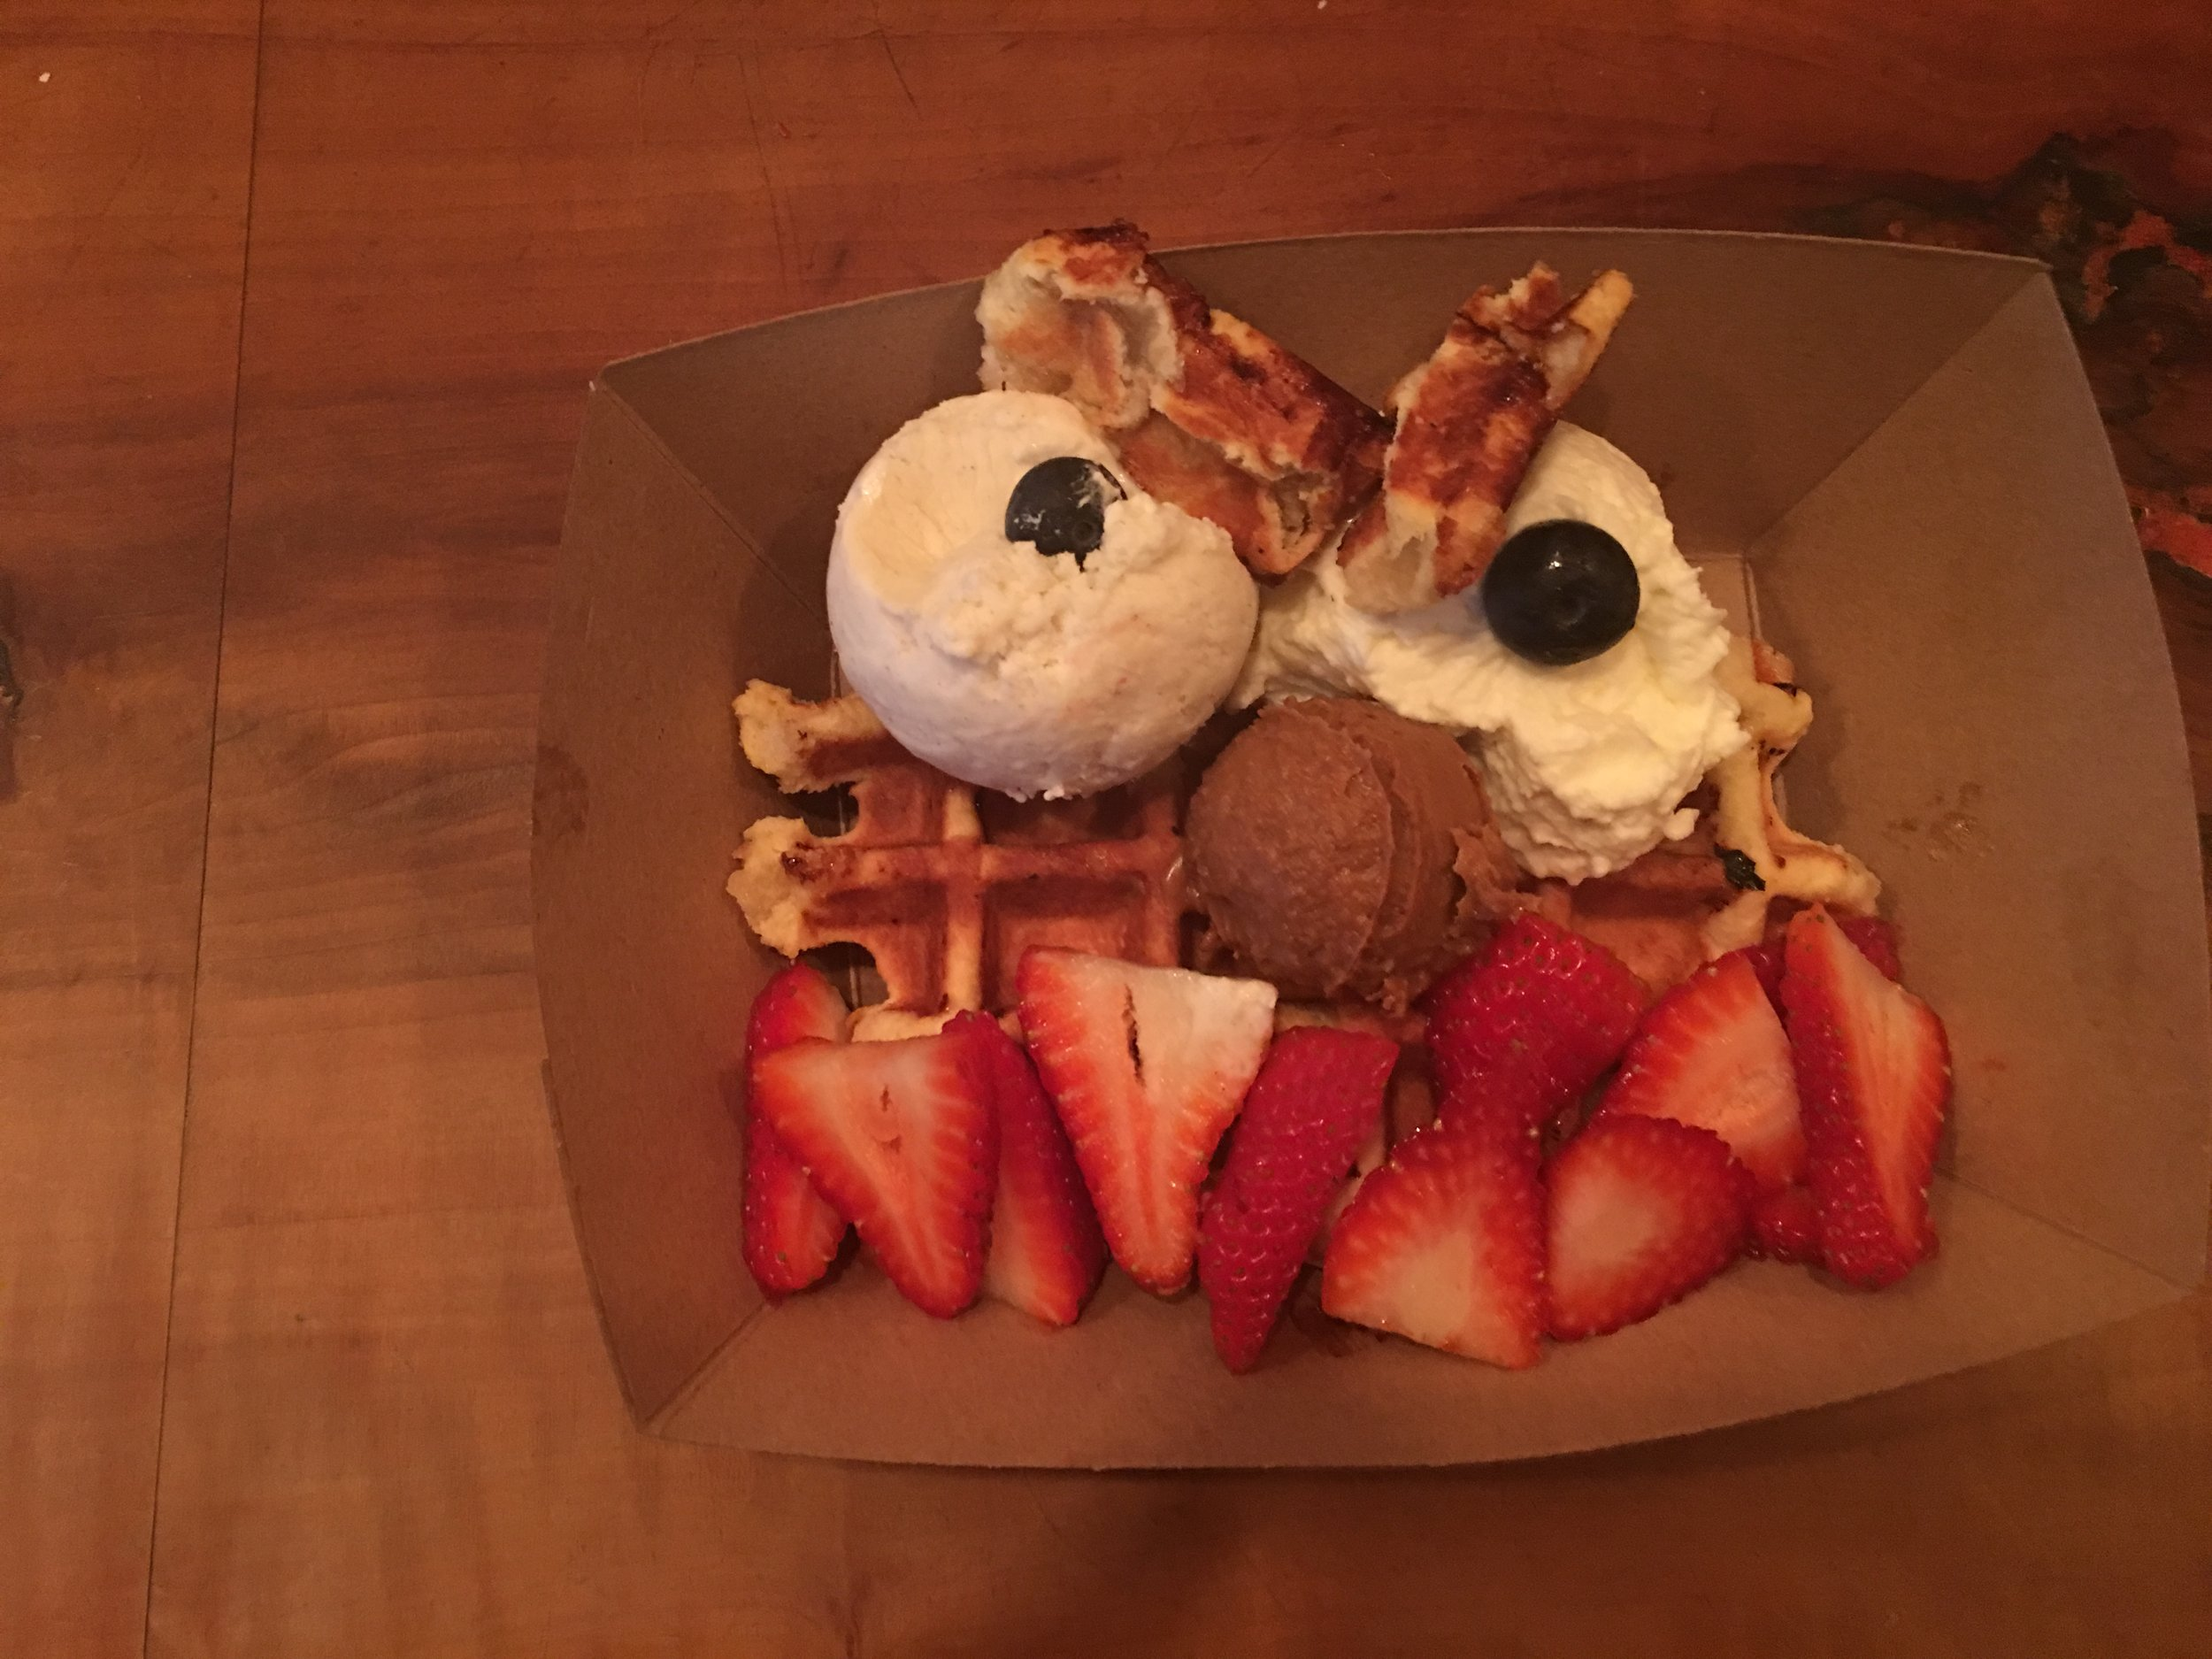 Welcome to The Waffle Monster. That lil dollop in the middle? That's biscoff spead. You're welcome.